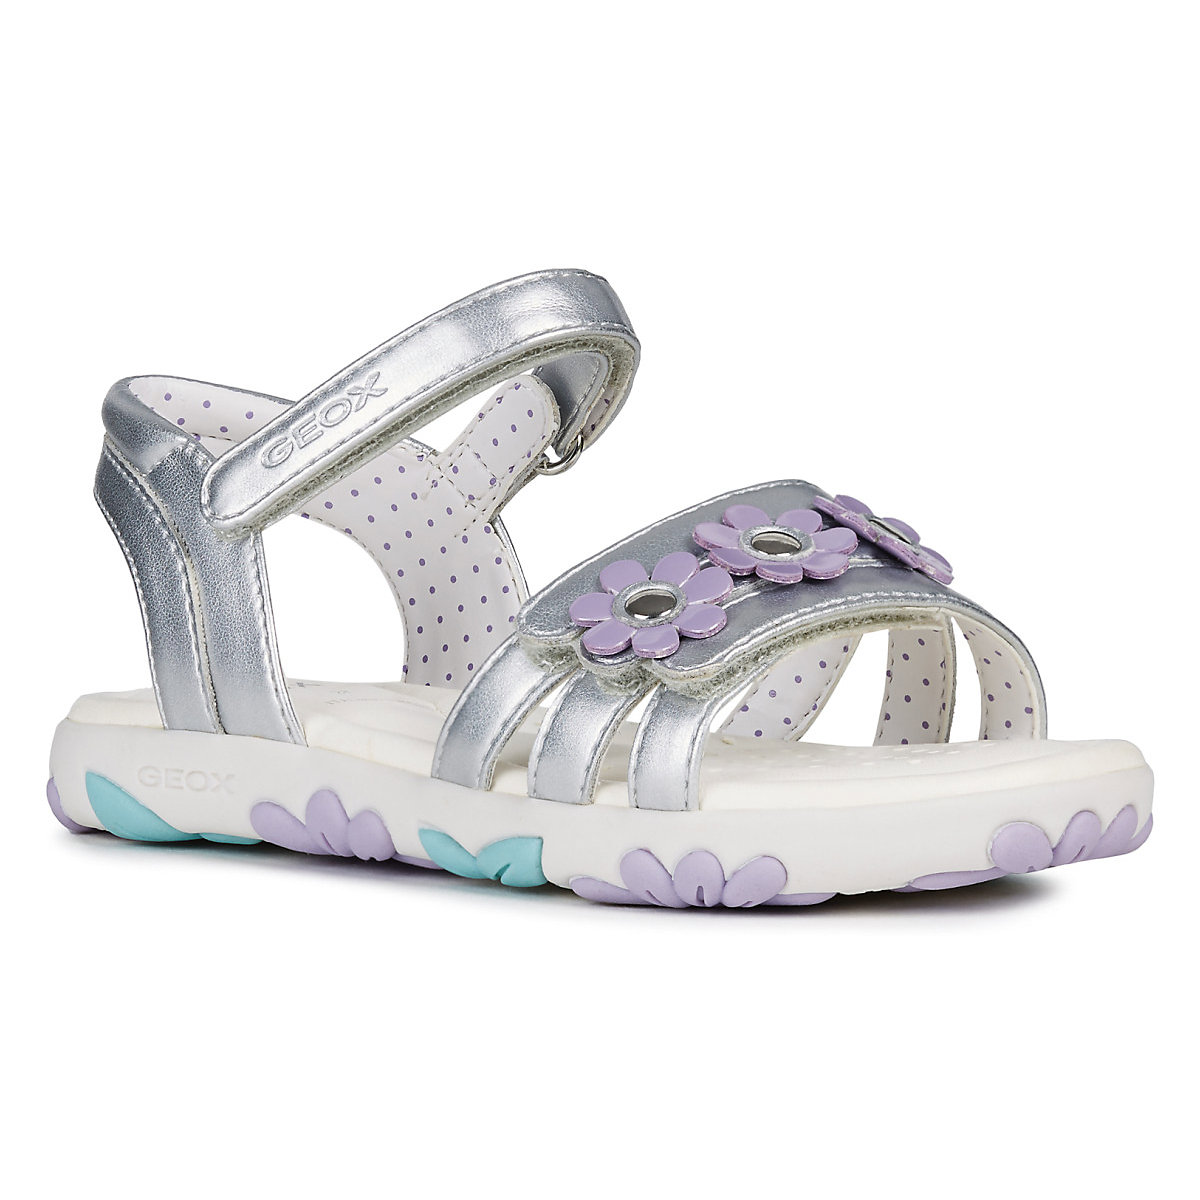 GEOX Sandals 10614415 children's shoes comfortable and light girls and boys gktinoo summer genuine leather women sandals comfortable ladies shoes gladiator sandal women female flat sandals fashion shoe